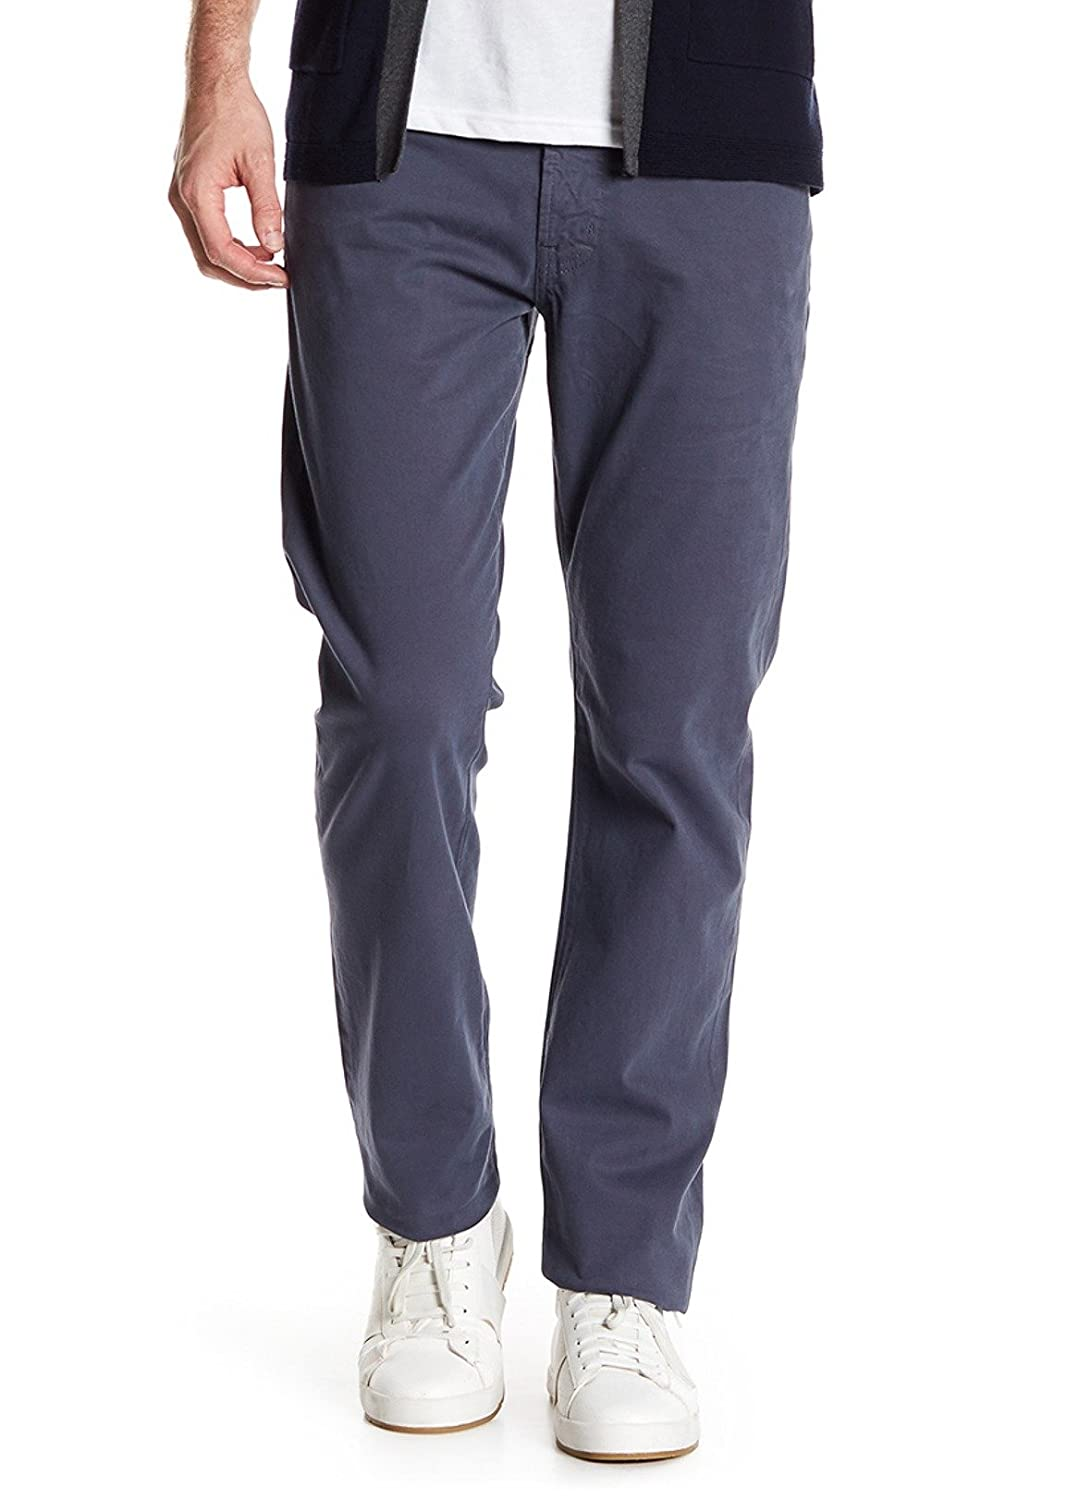 AG Adriano Goldschmied Mens The Graduate Tailored Sud Pant